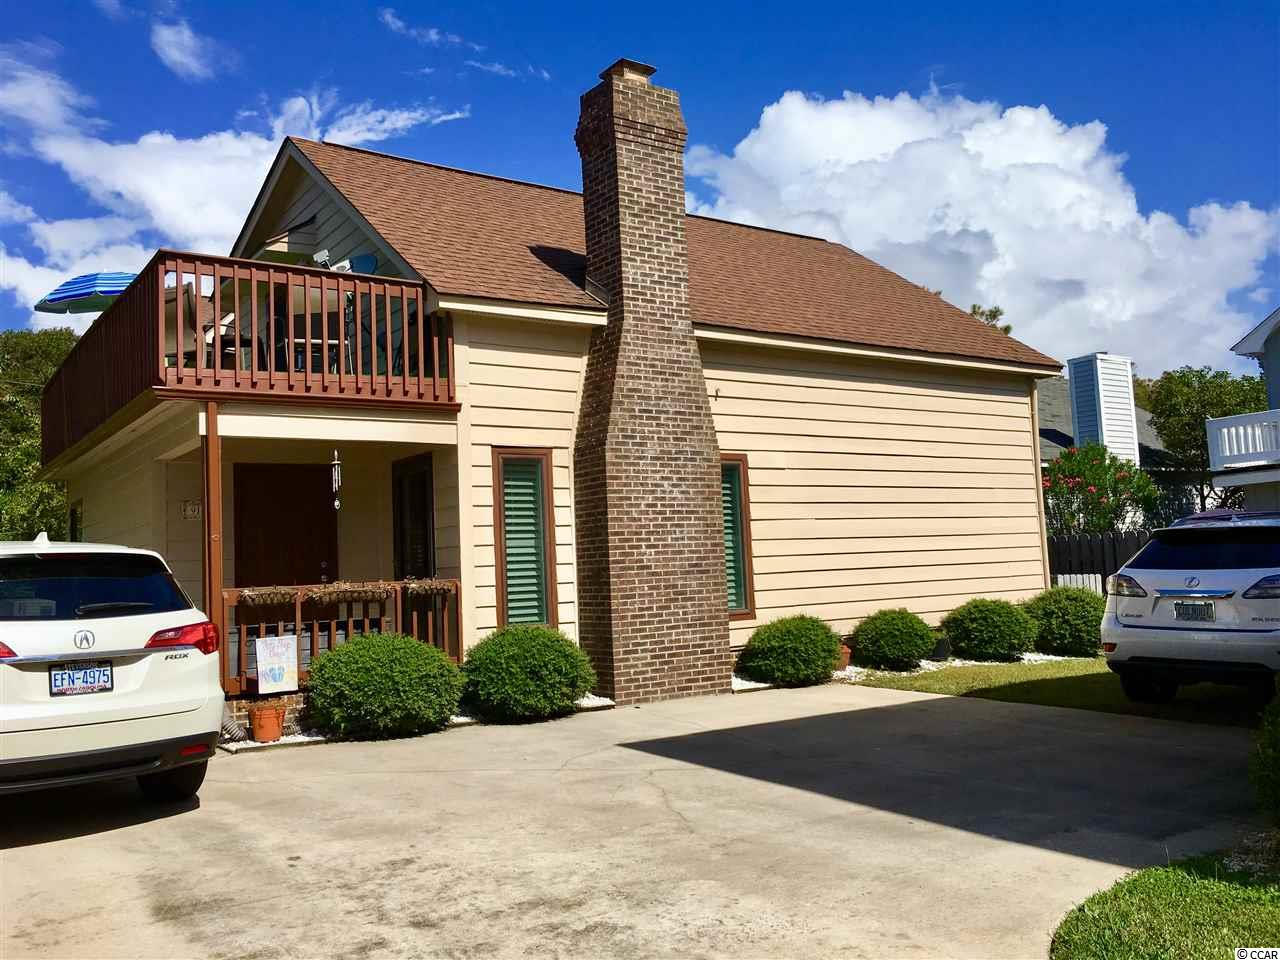 Patio Home for Sale at 918-I Perrin Drive 918-I Perrin Drive North Myrtle Beach, South Carolina 29582 United States